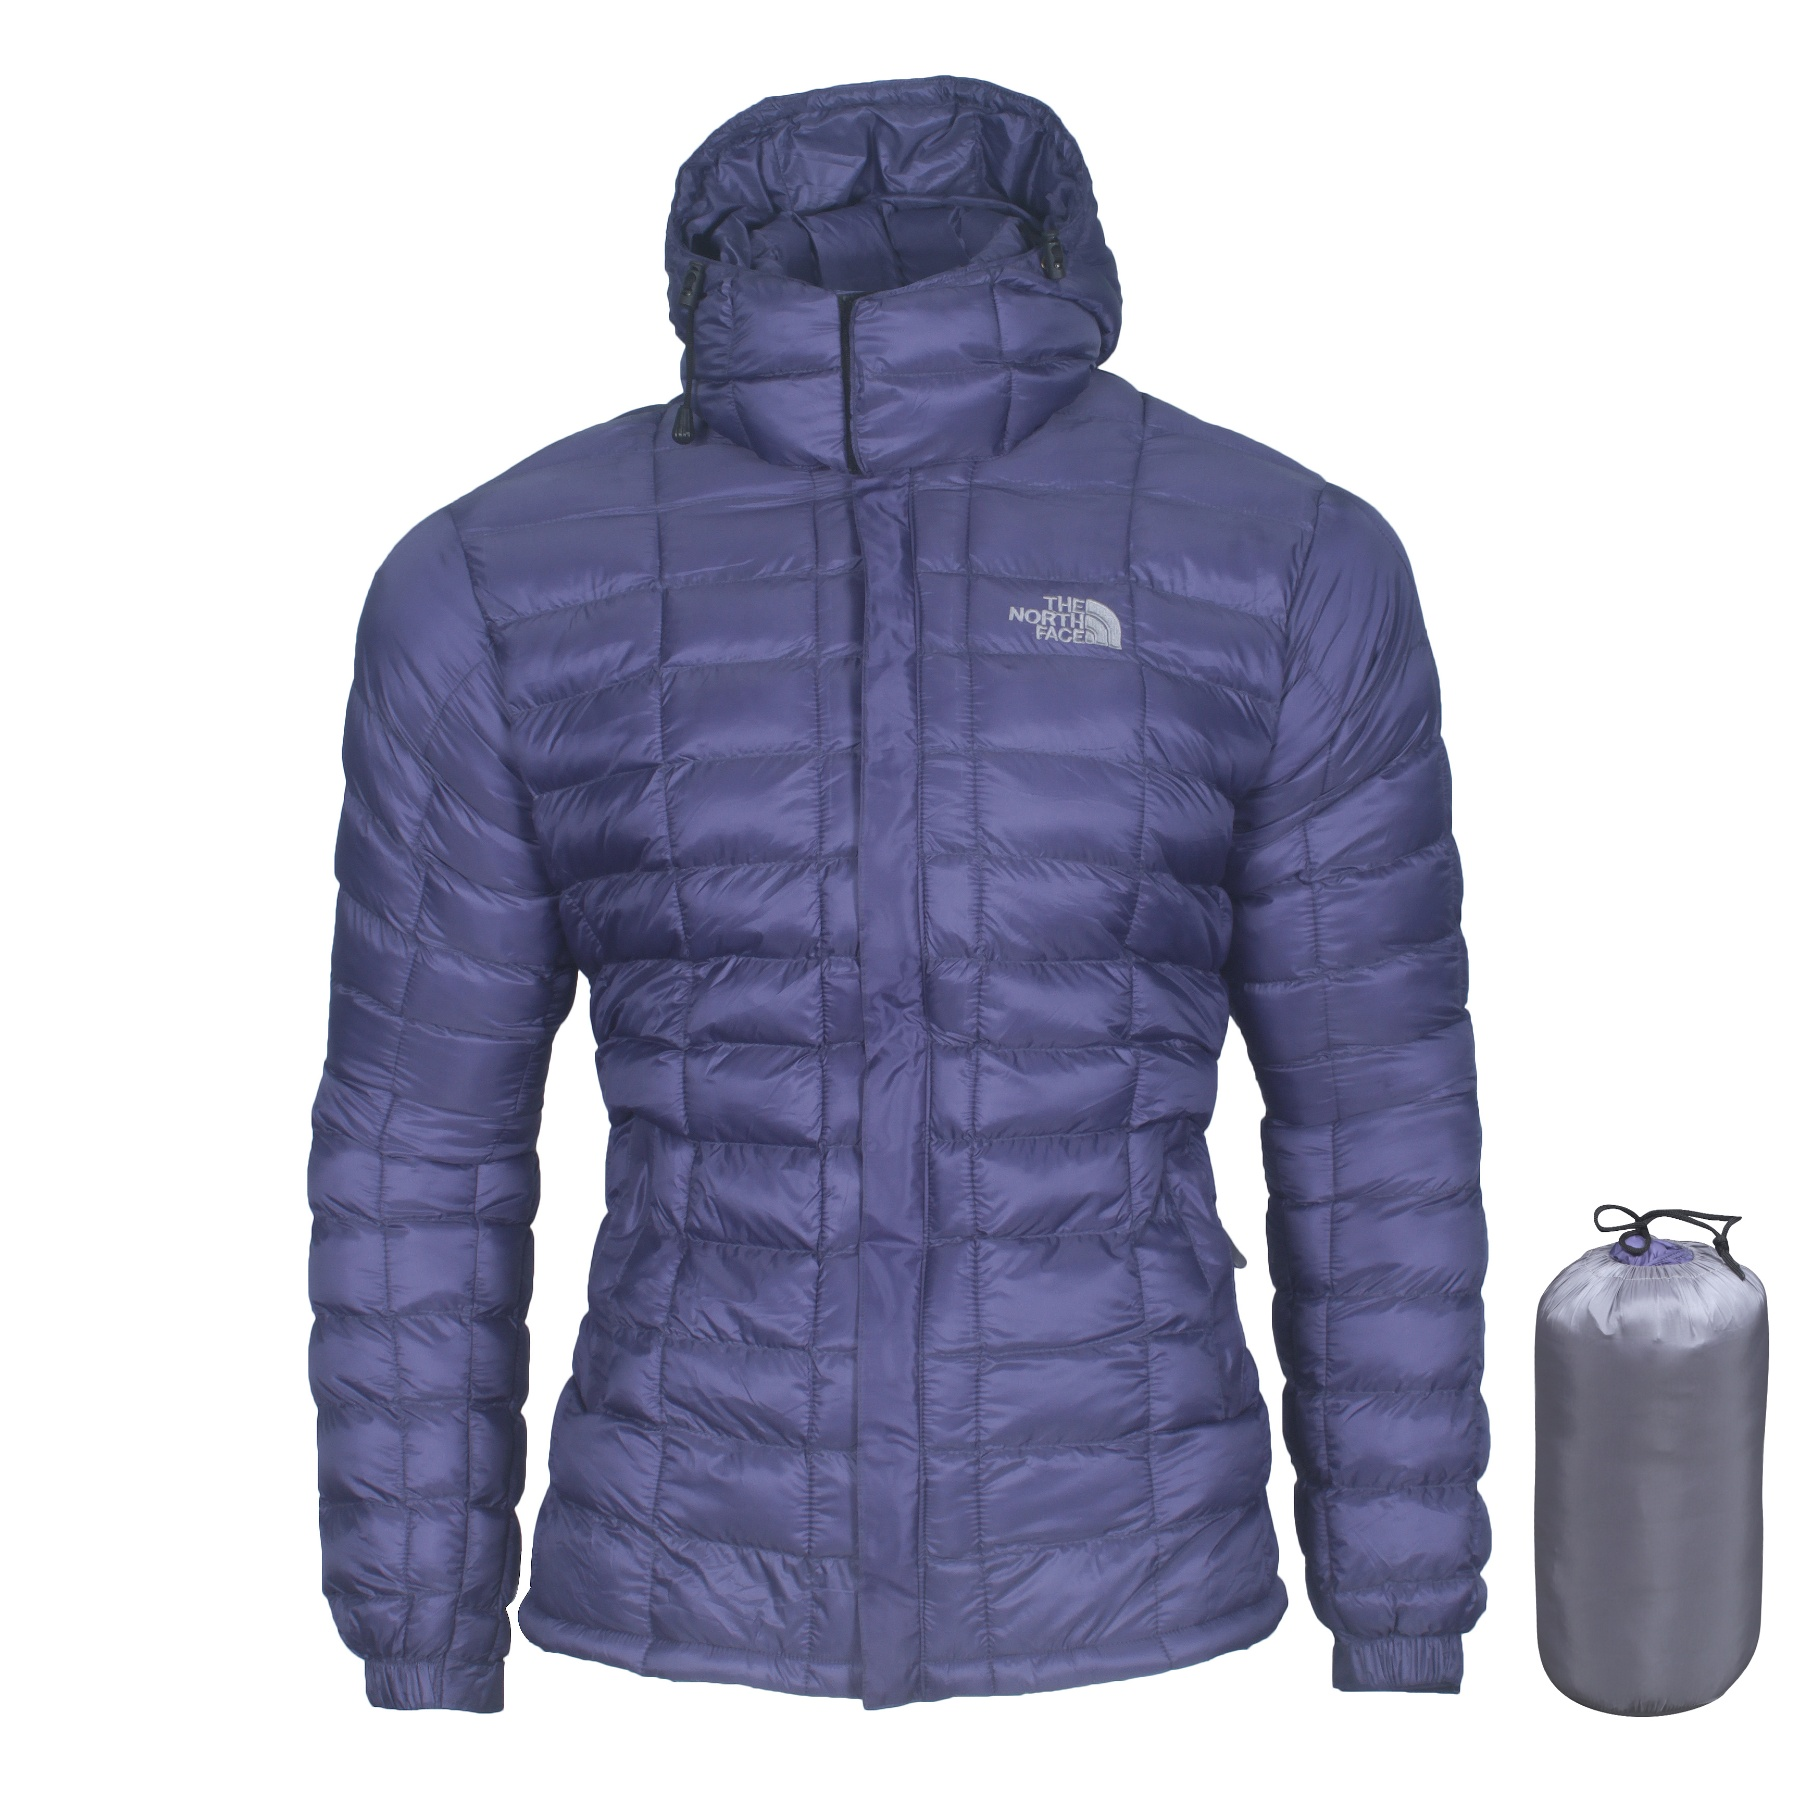 Men's Silicon Jacket For Winter